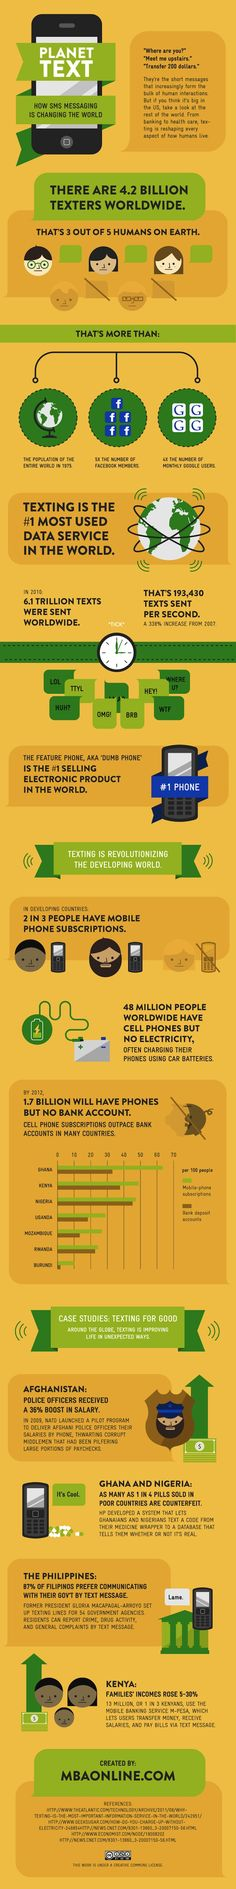 How SMS is changing the world.